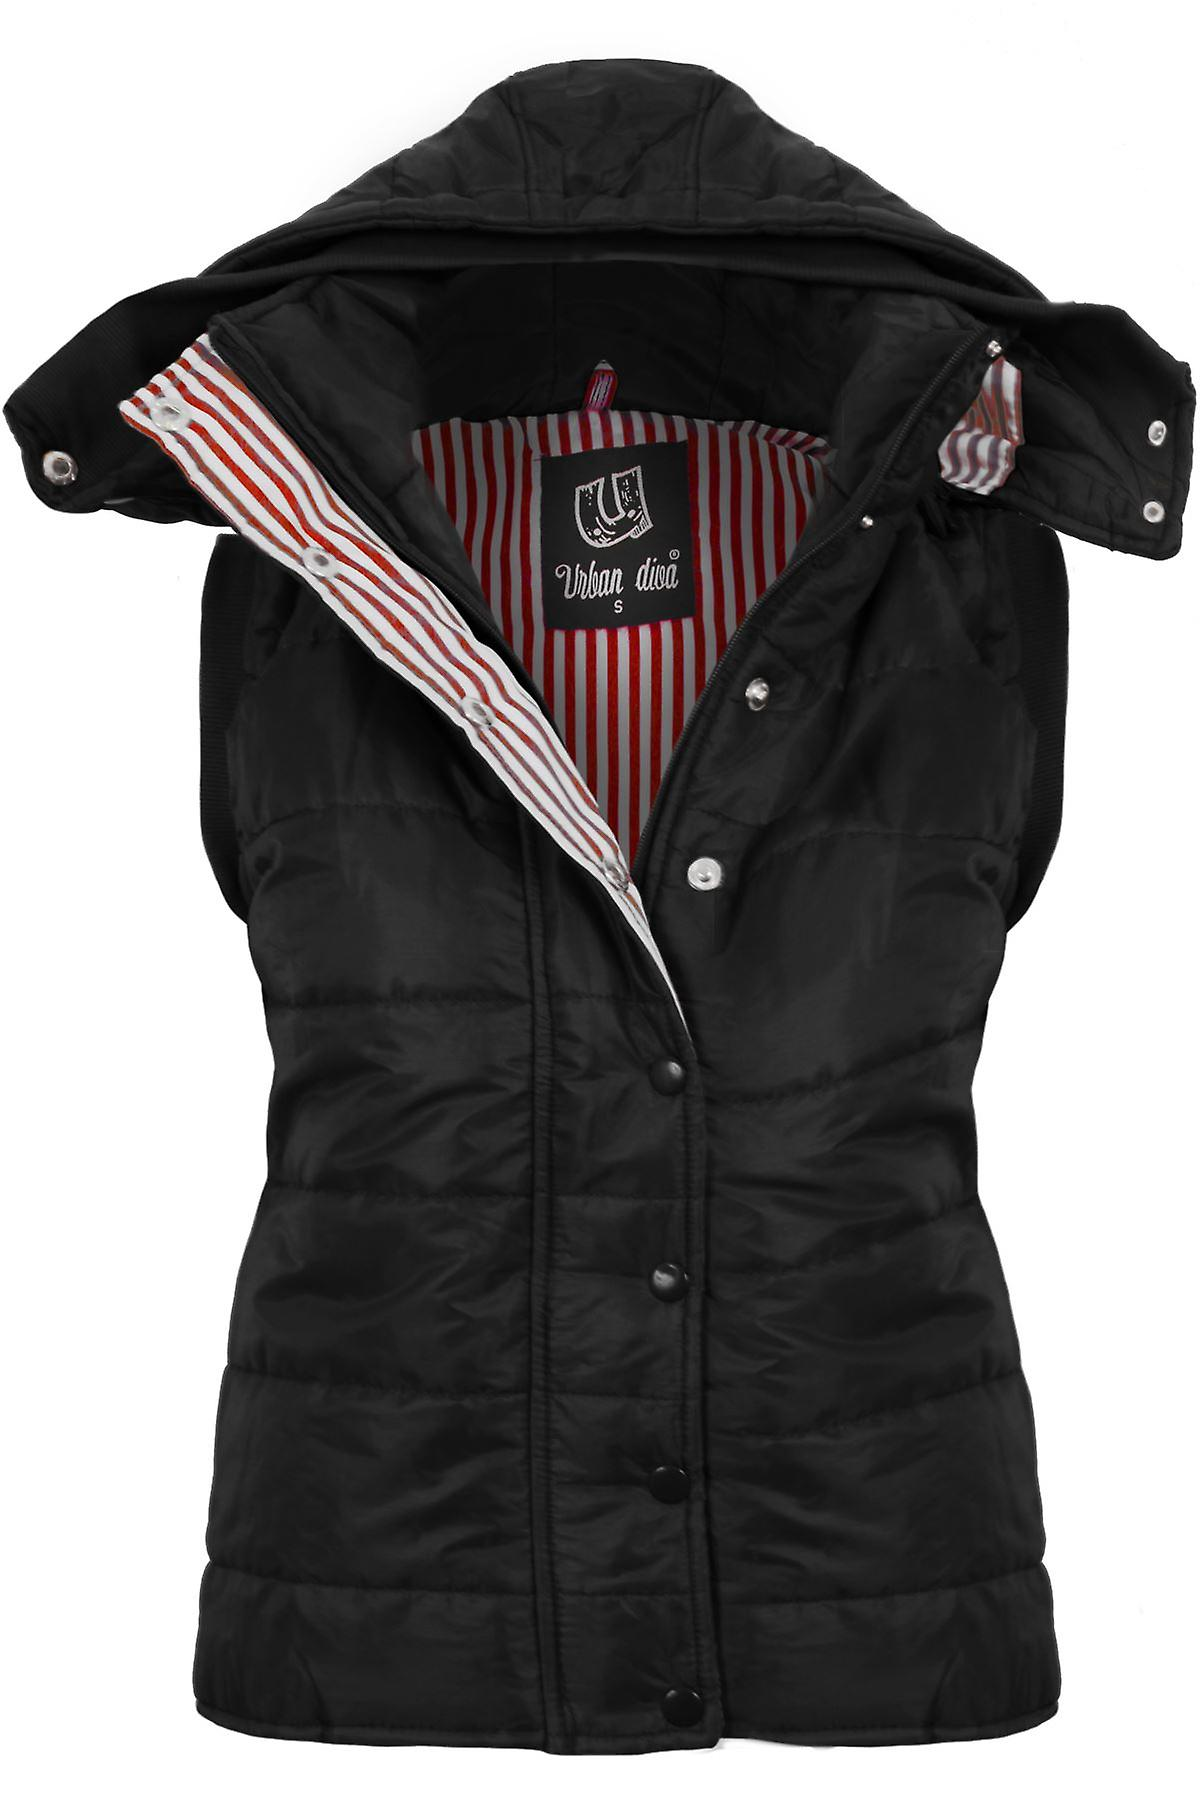 Ladies Sleevless Hooded Quilted Womens Body Warmer Jacket